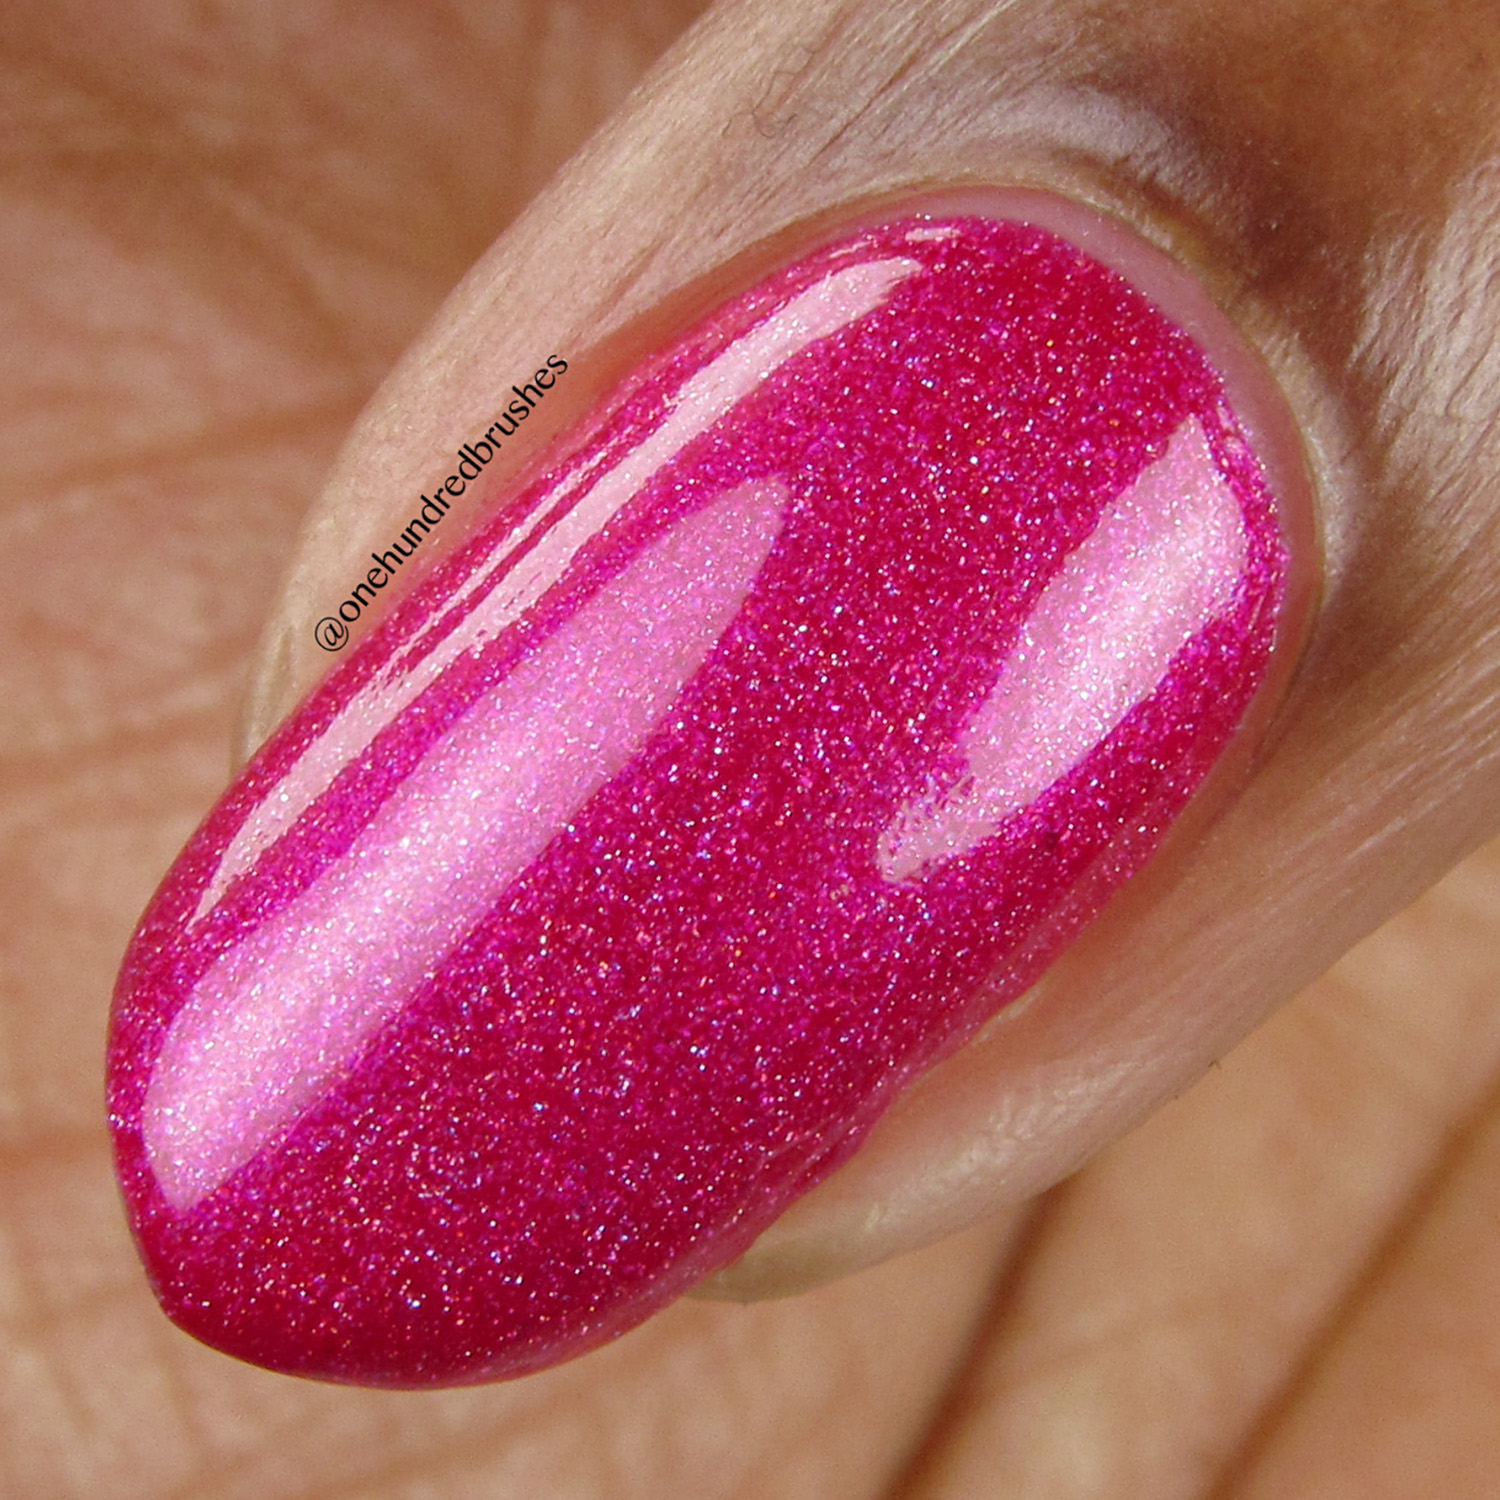 Tantrum - macro - Vapid Lacquer - April 2018 - Spring release - fuschia pink - linear holographic